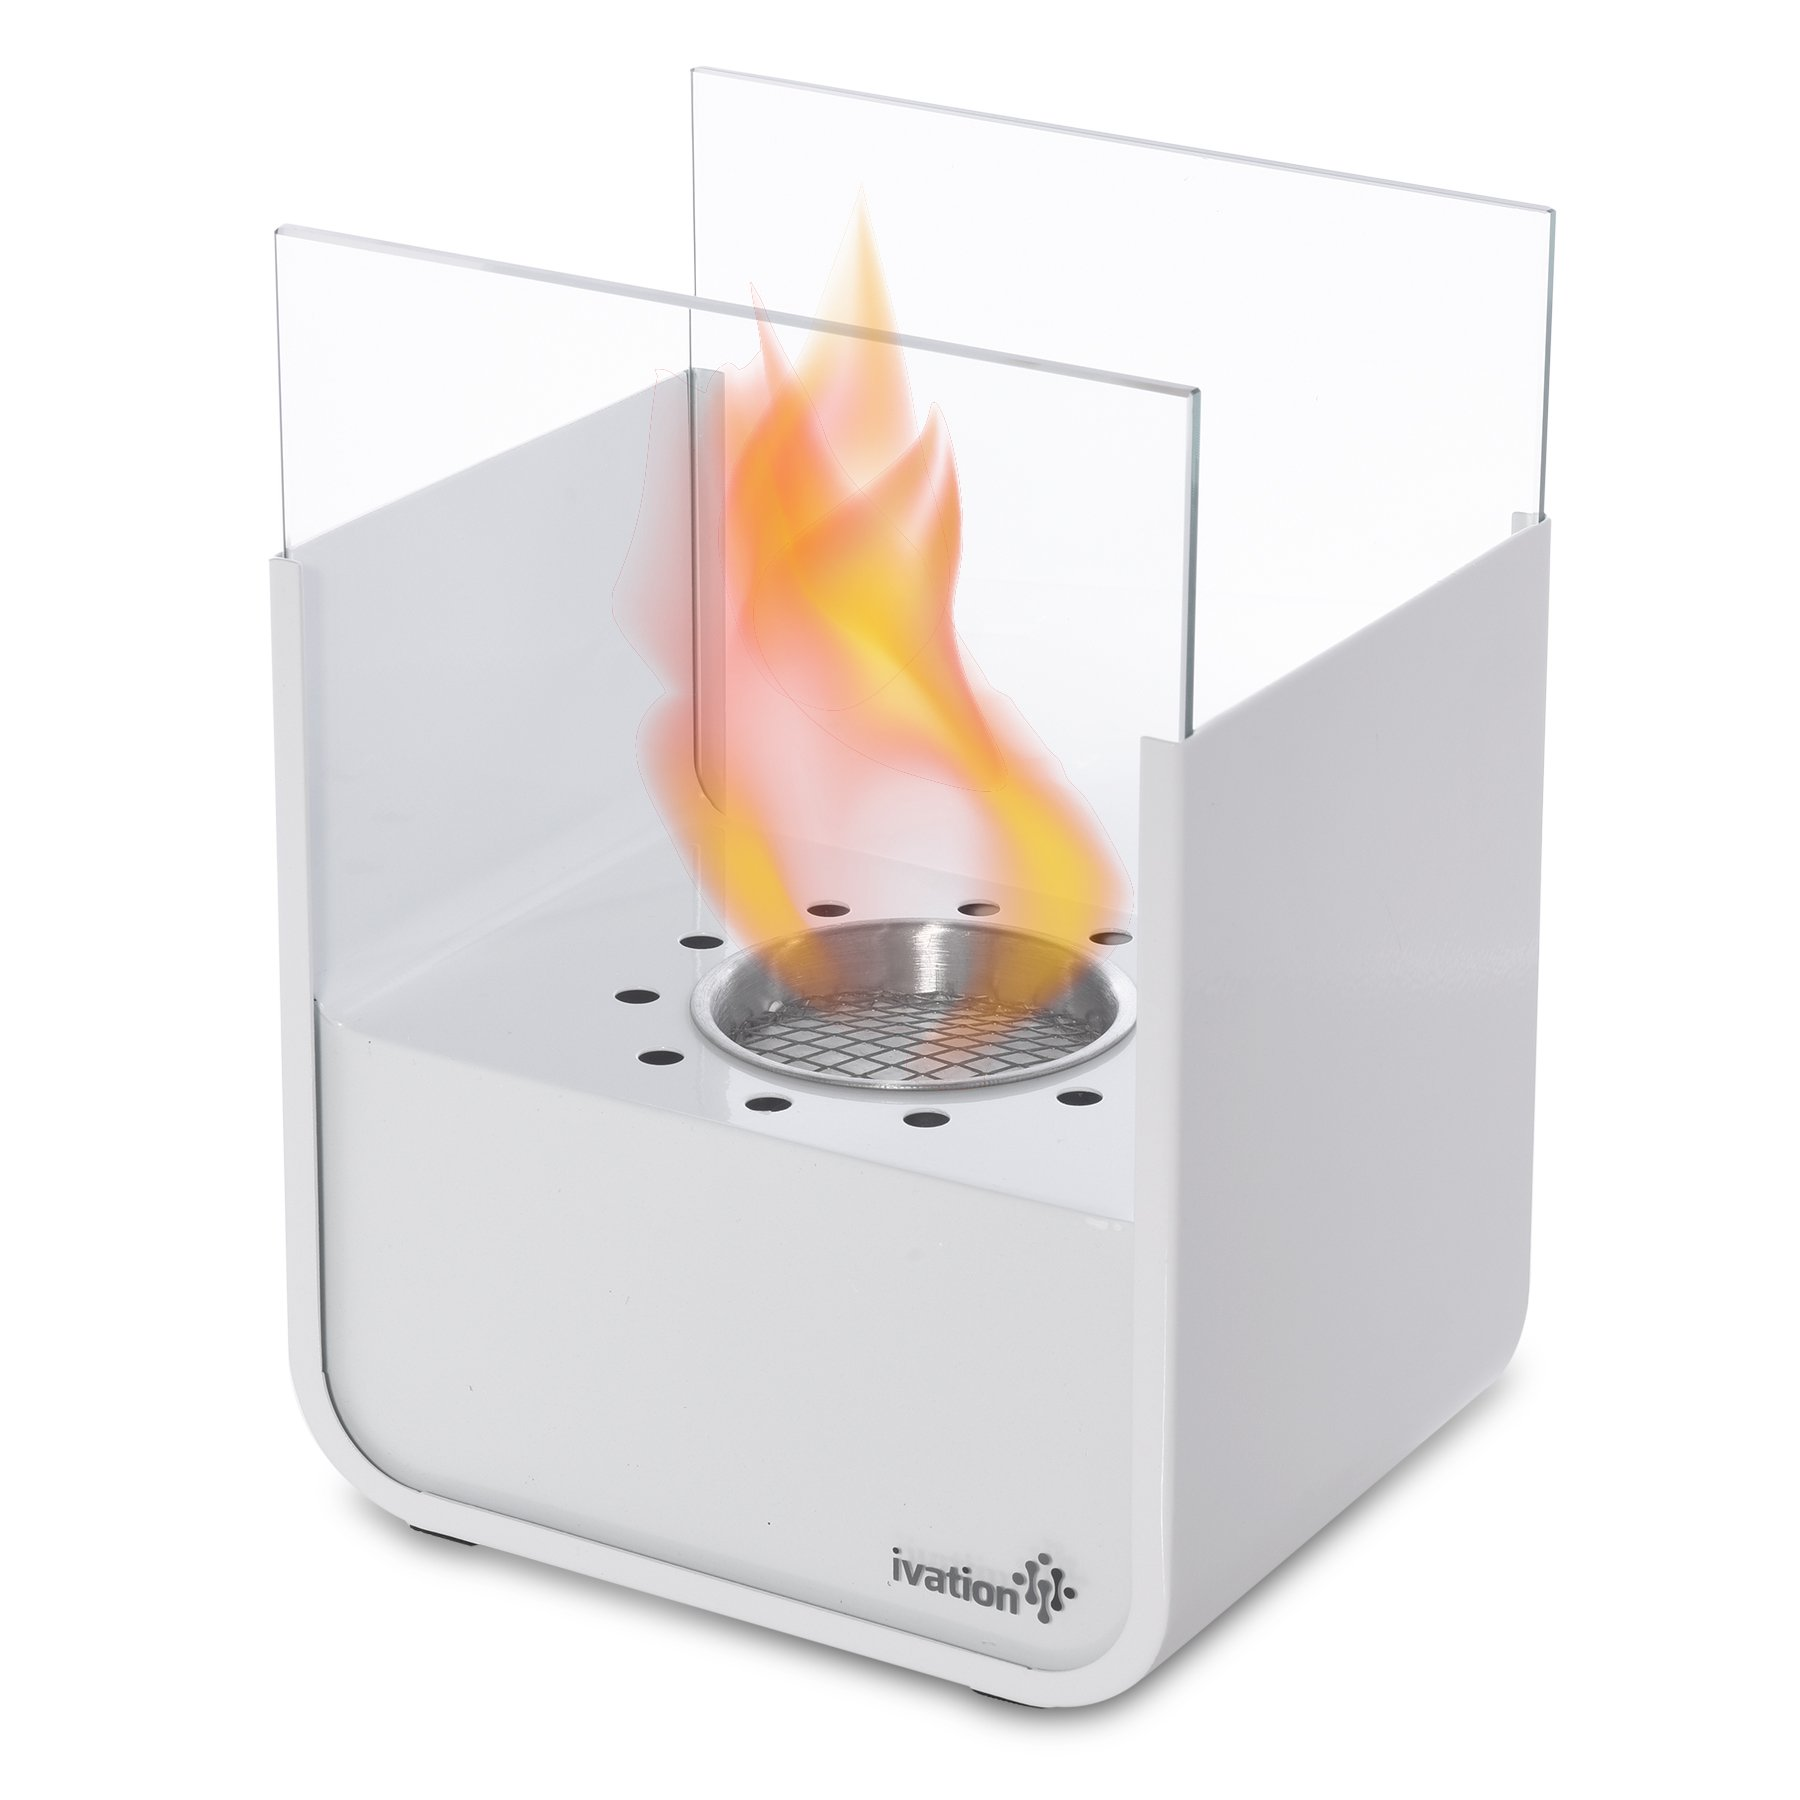 Ivation Vent-Less Mini Tabletop Fireplace – Stainless Steel Portable Bio Ethanol Fireplace for Indoor & Outdoor Use – Includes Decorative Fireplace, Fuel Canister & Flame Snuffer (White)